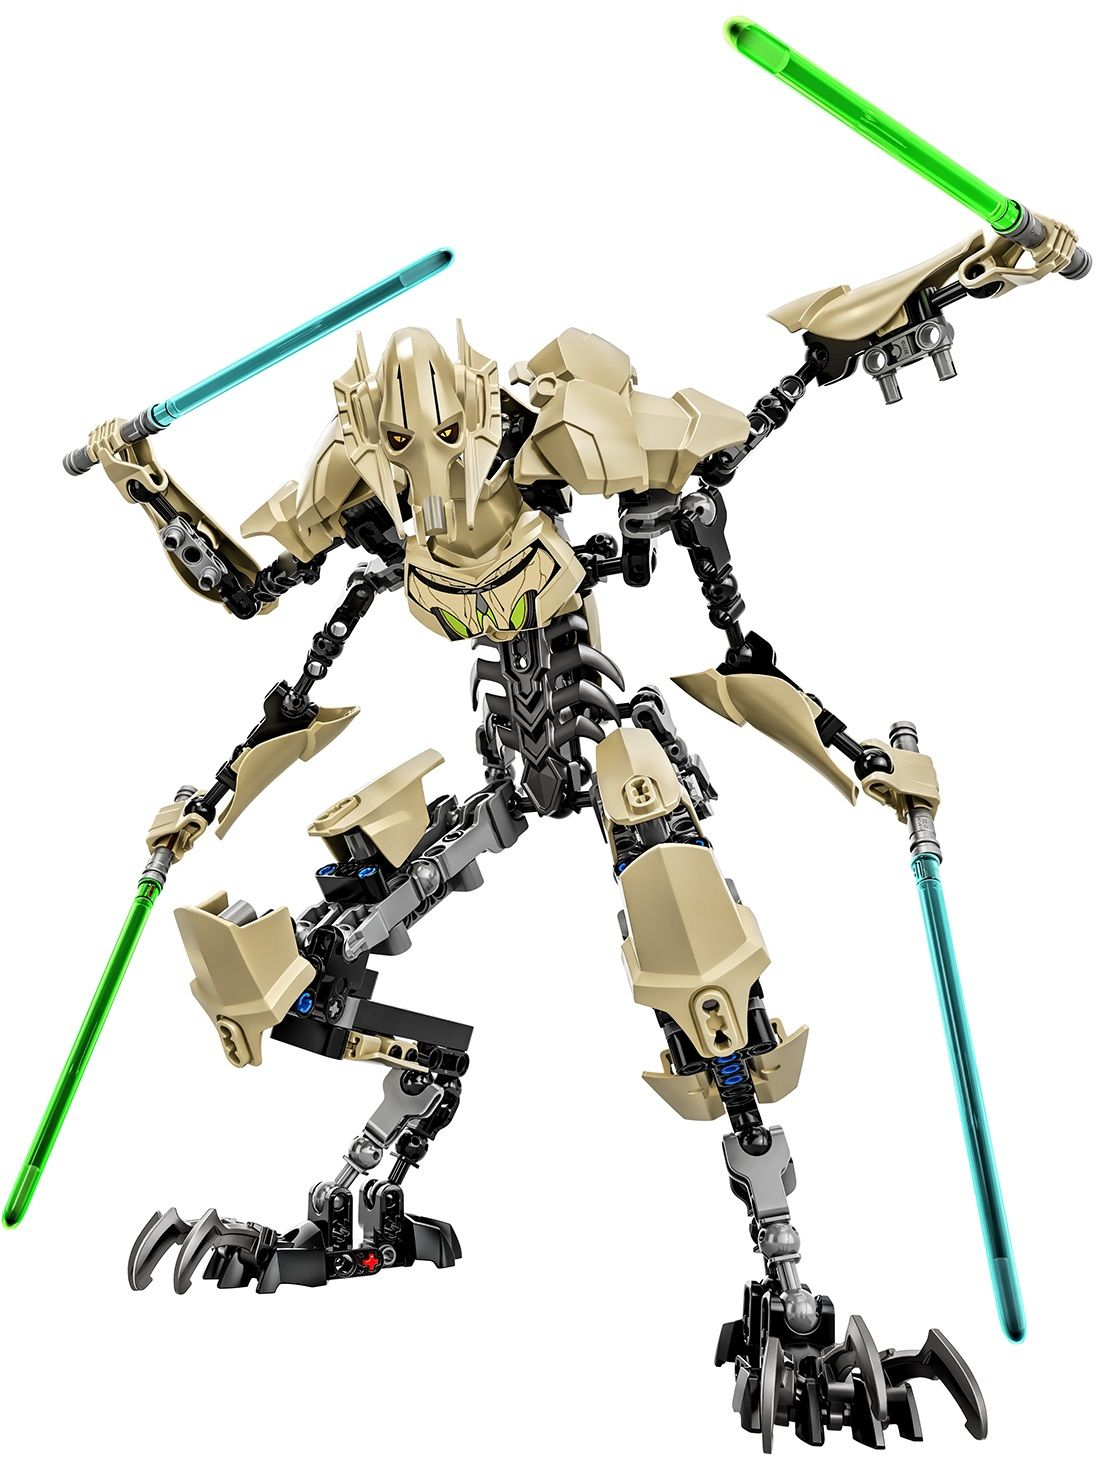 Upcoming Lego Star Wars The Force Awakens Sets